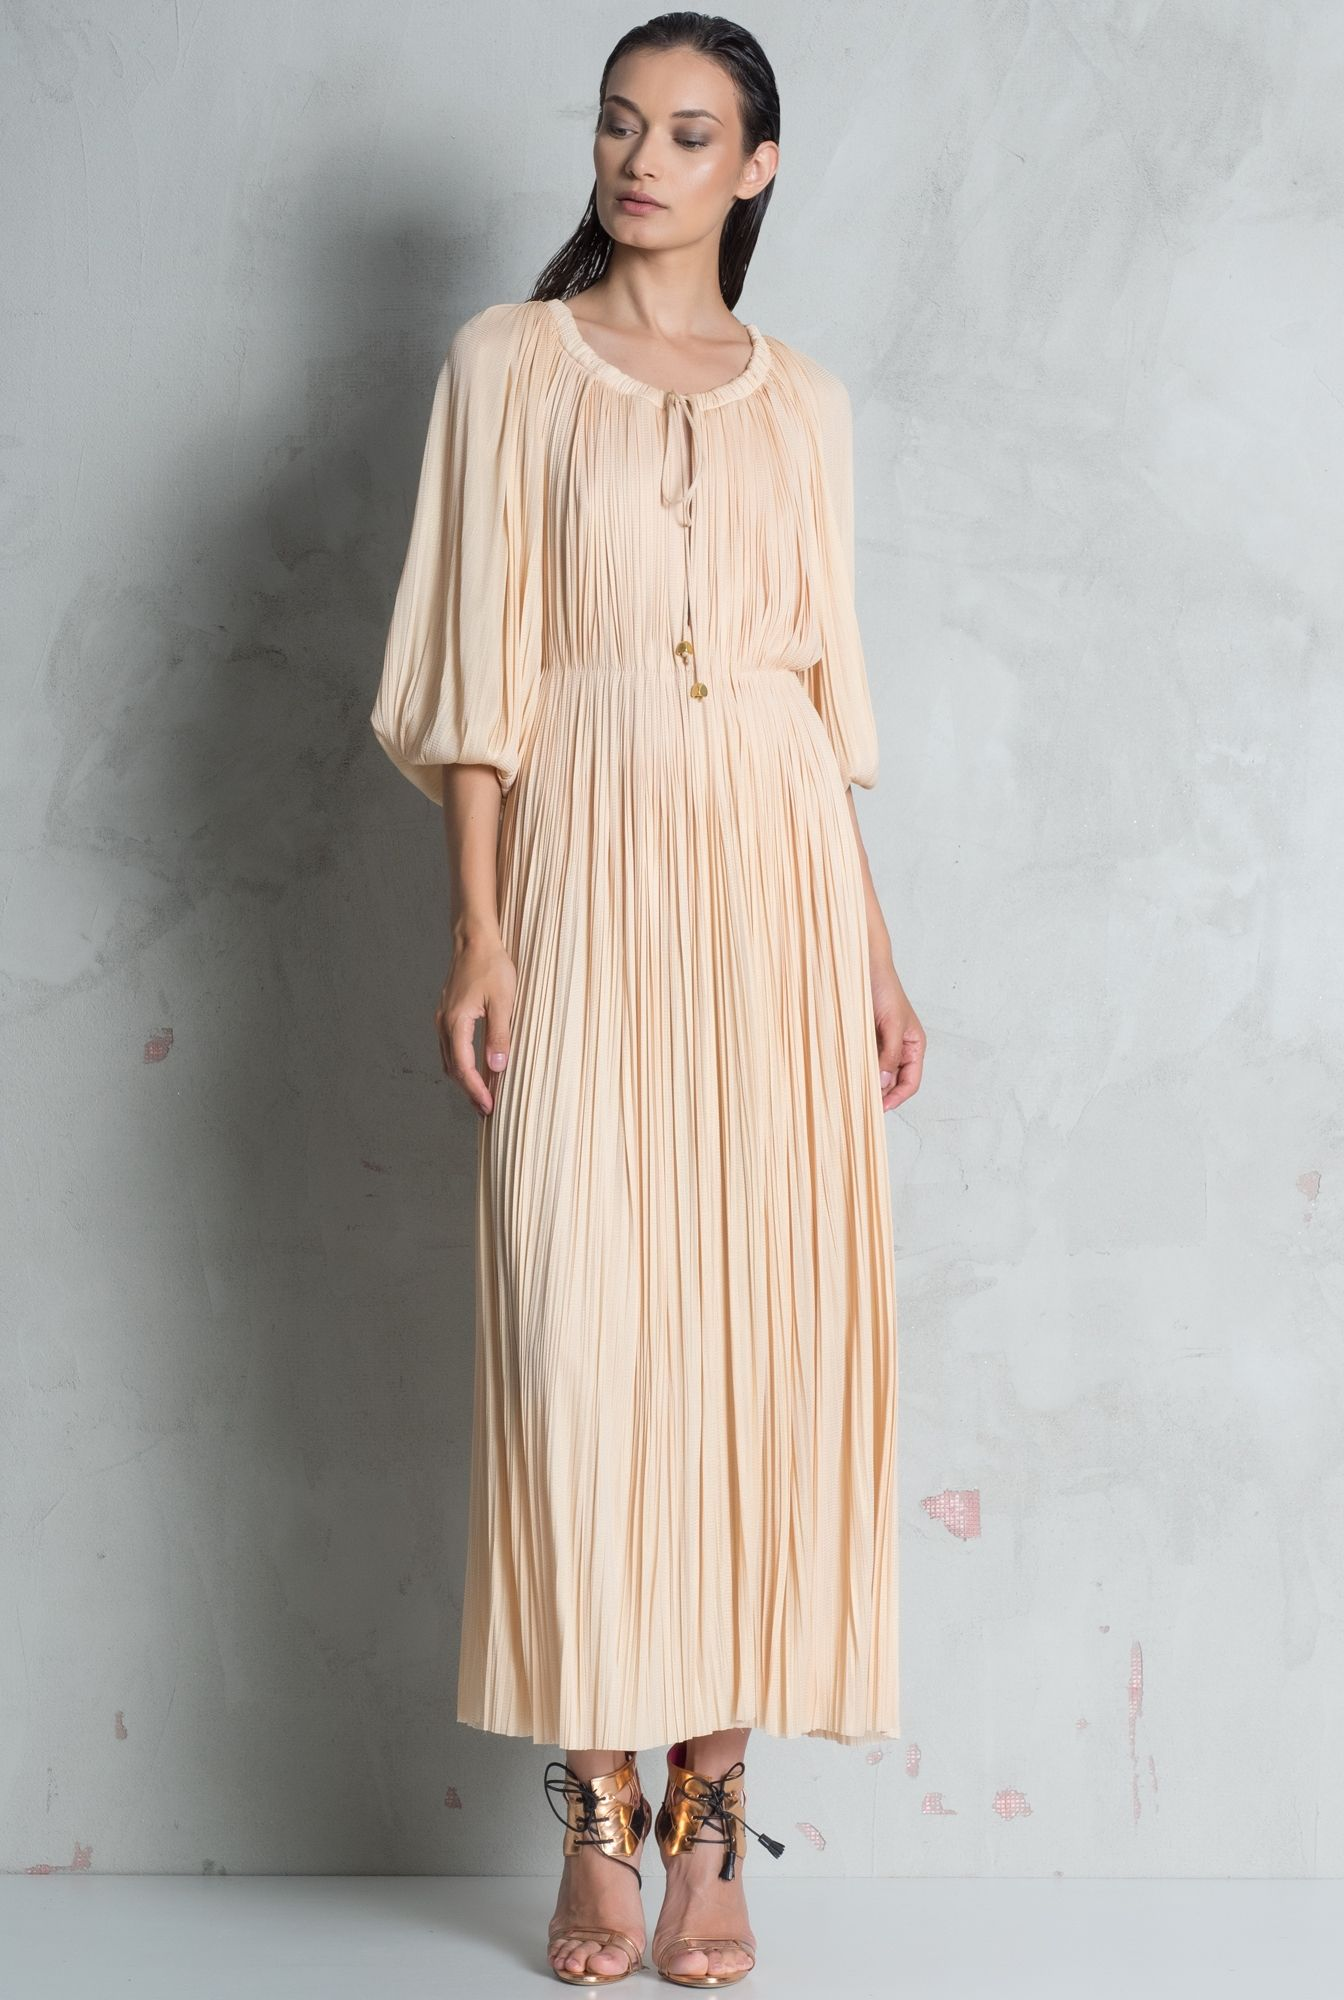 Click here to buy Maria Lucia Hohan AMBRA dress at MLHOUTLETCOM